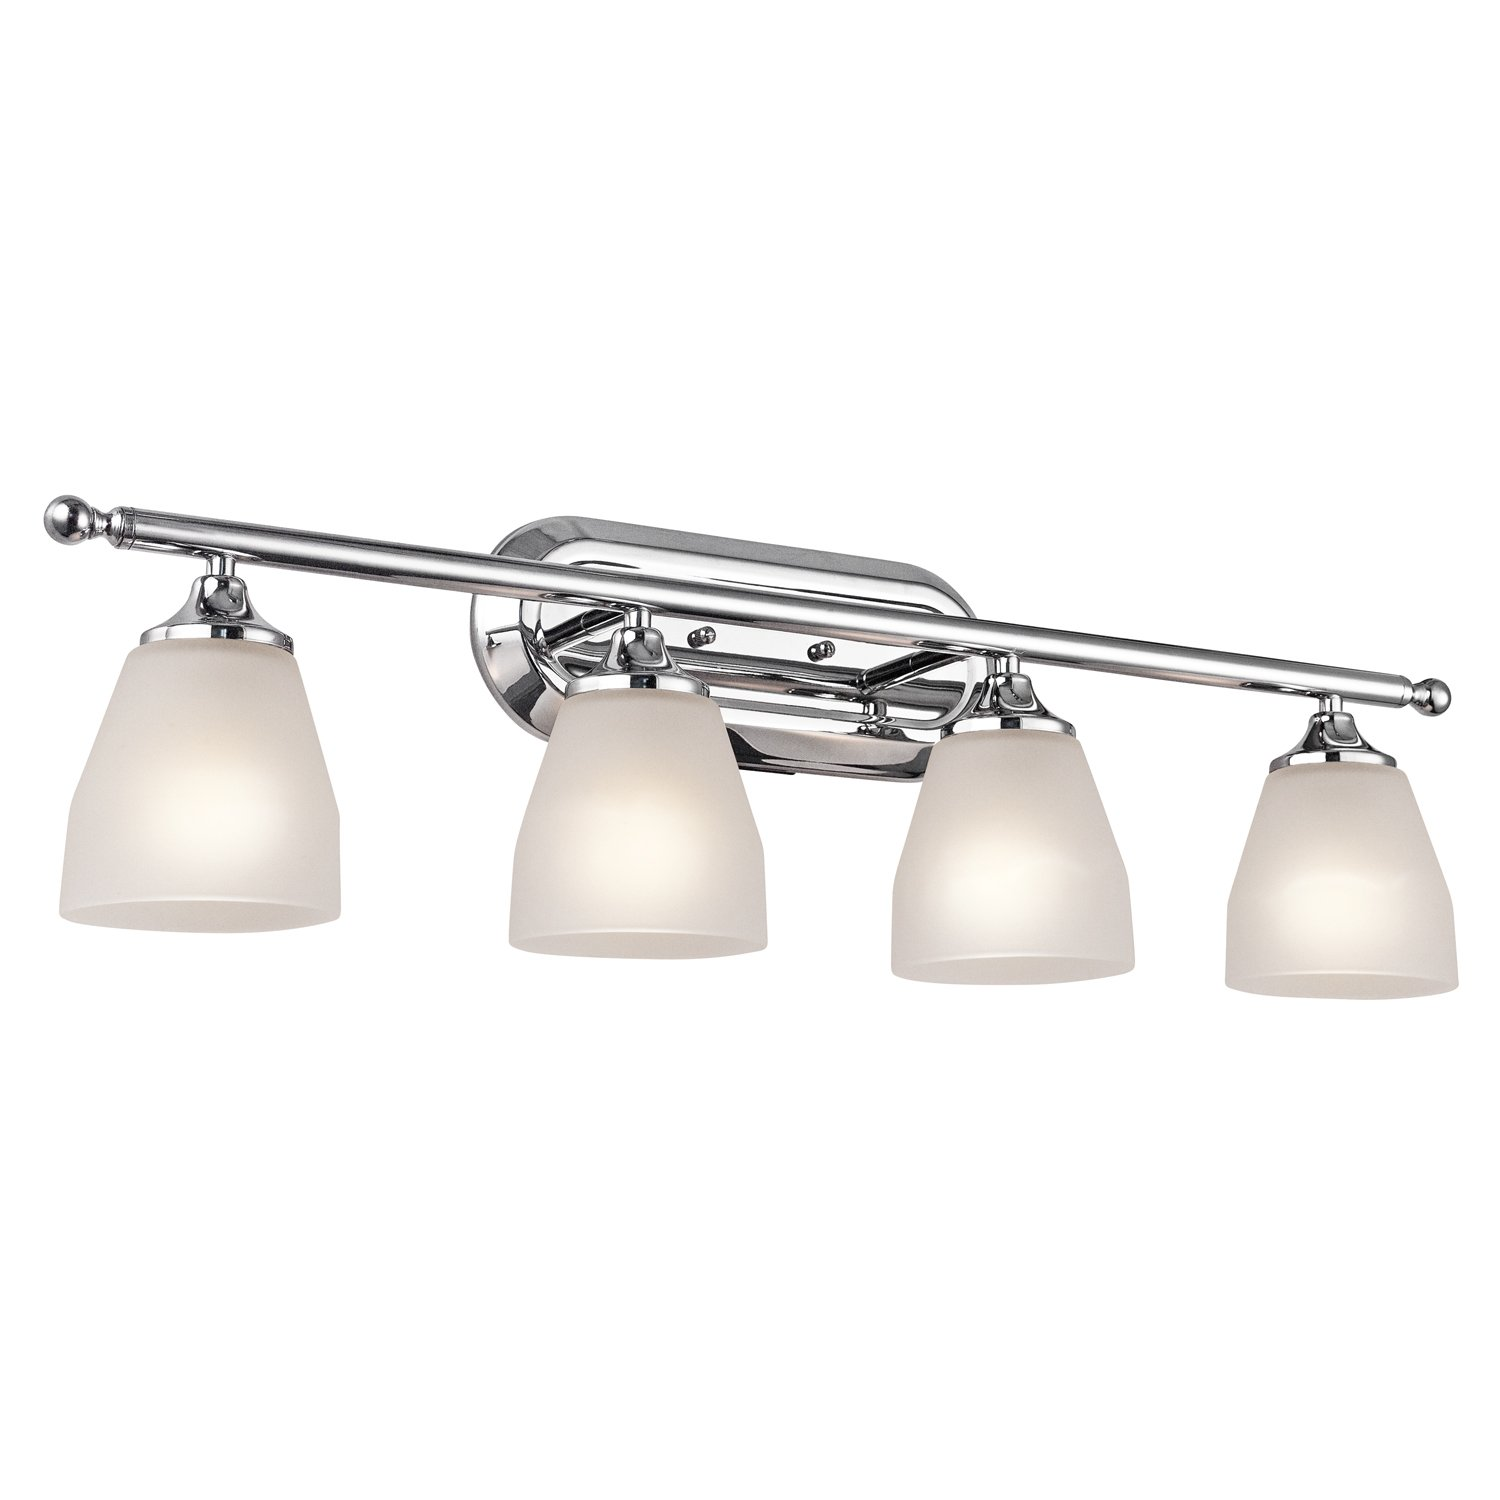 Kichler 5449CH Four Light Bath - Vanity Lighting Fixtures - Amazon.com